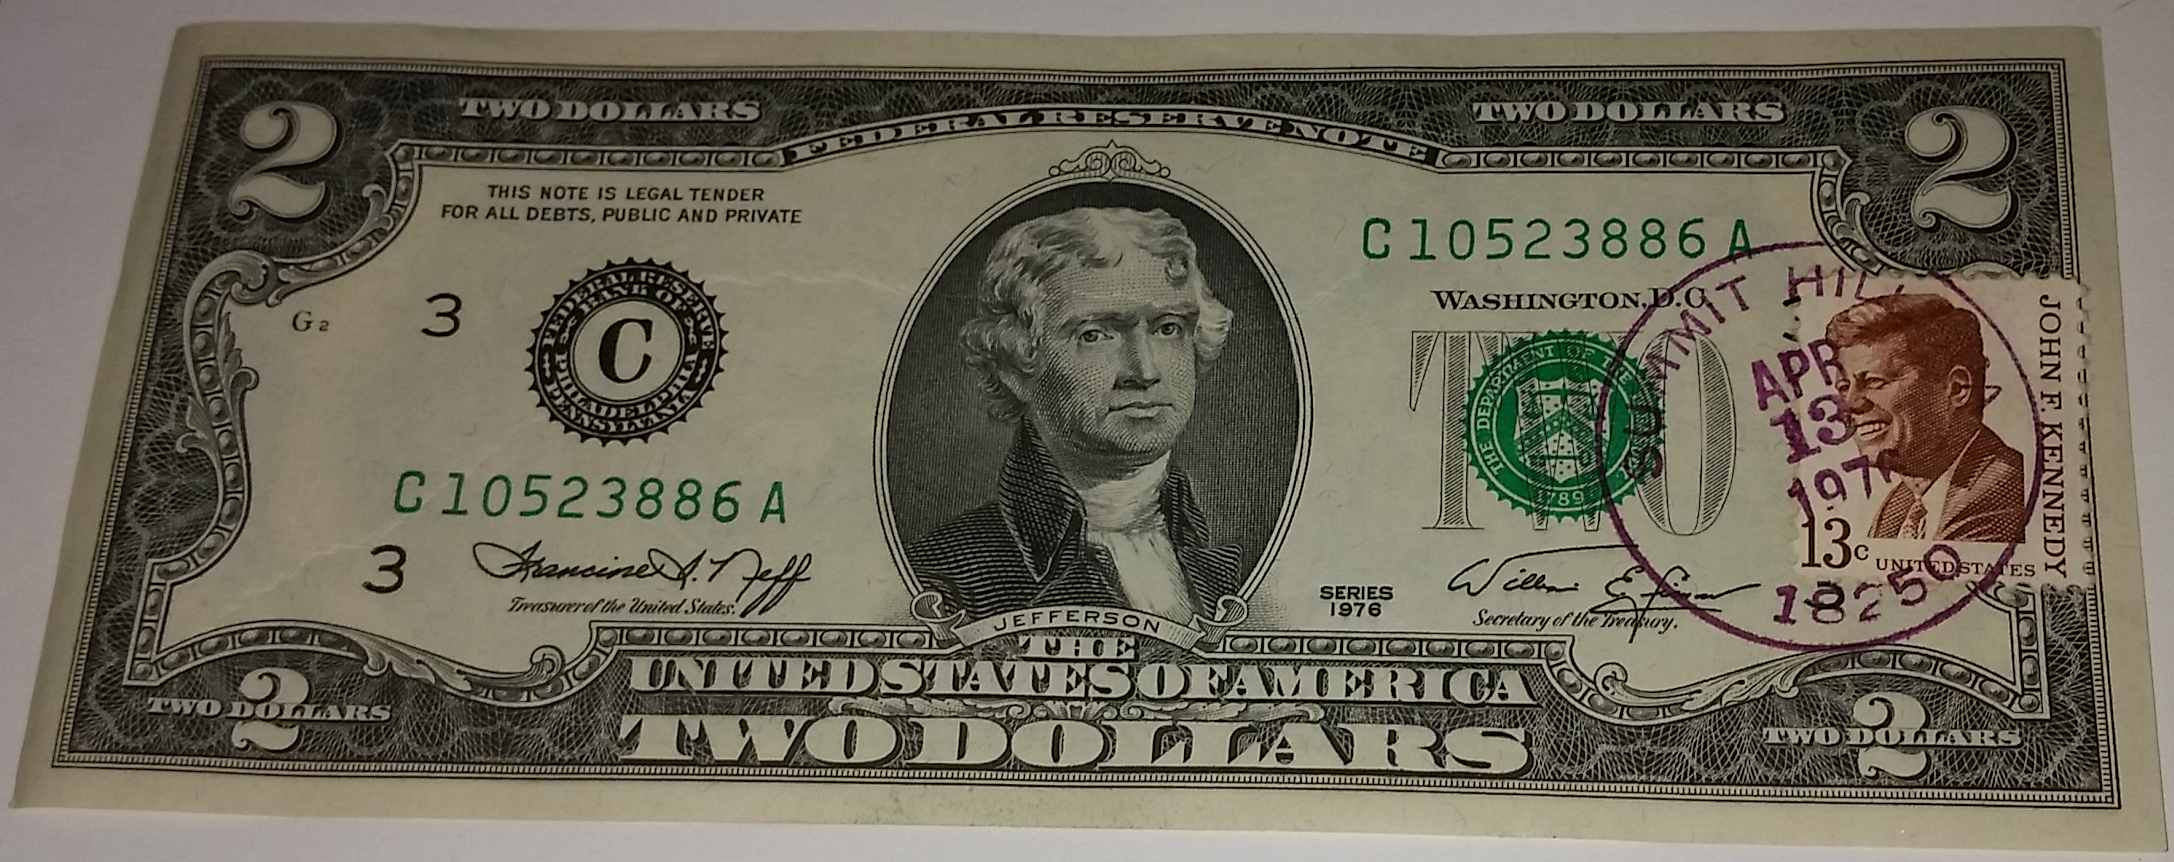 1976 Two Dollar Bills